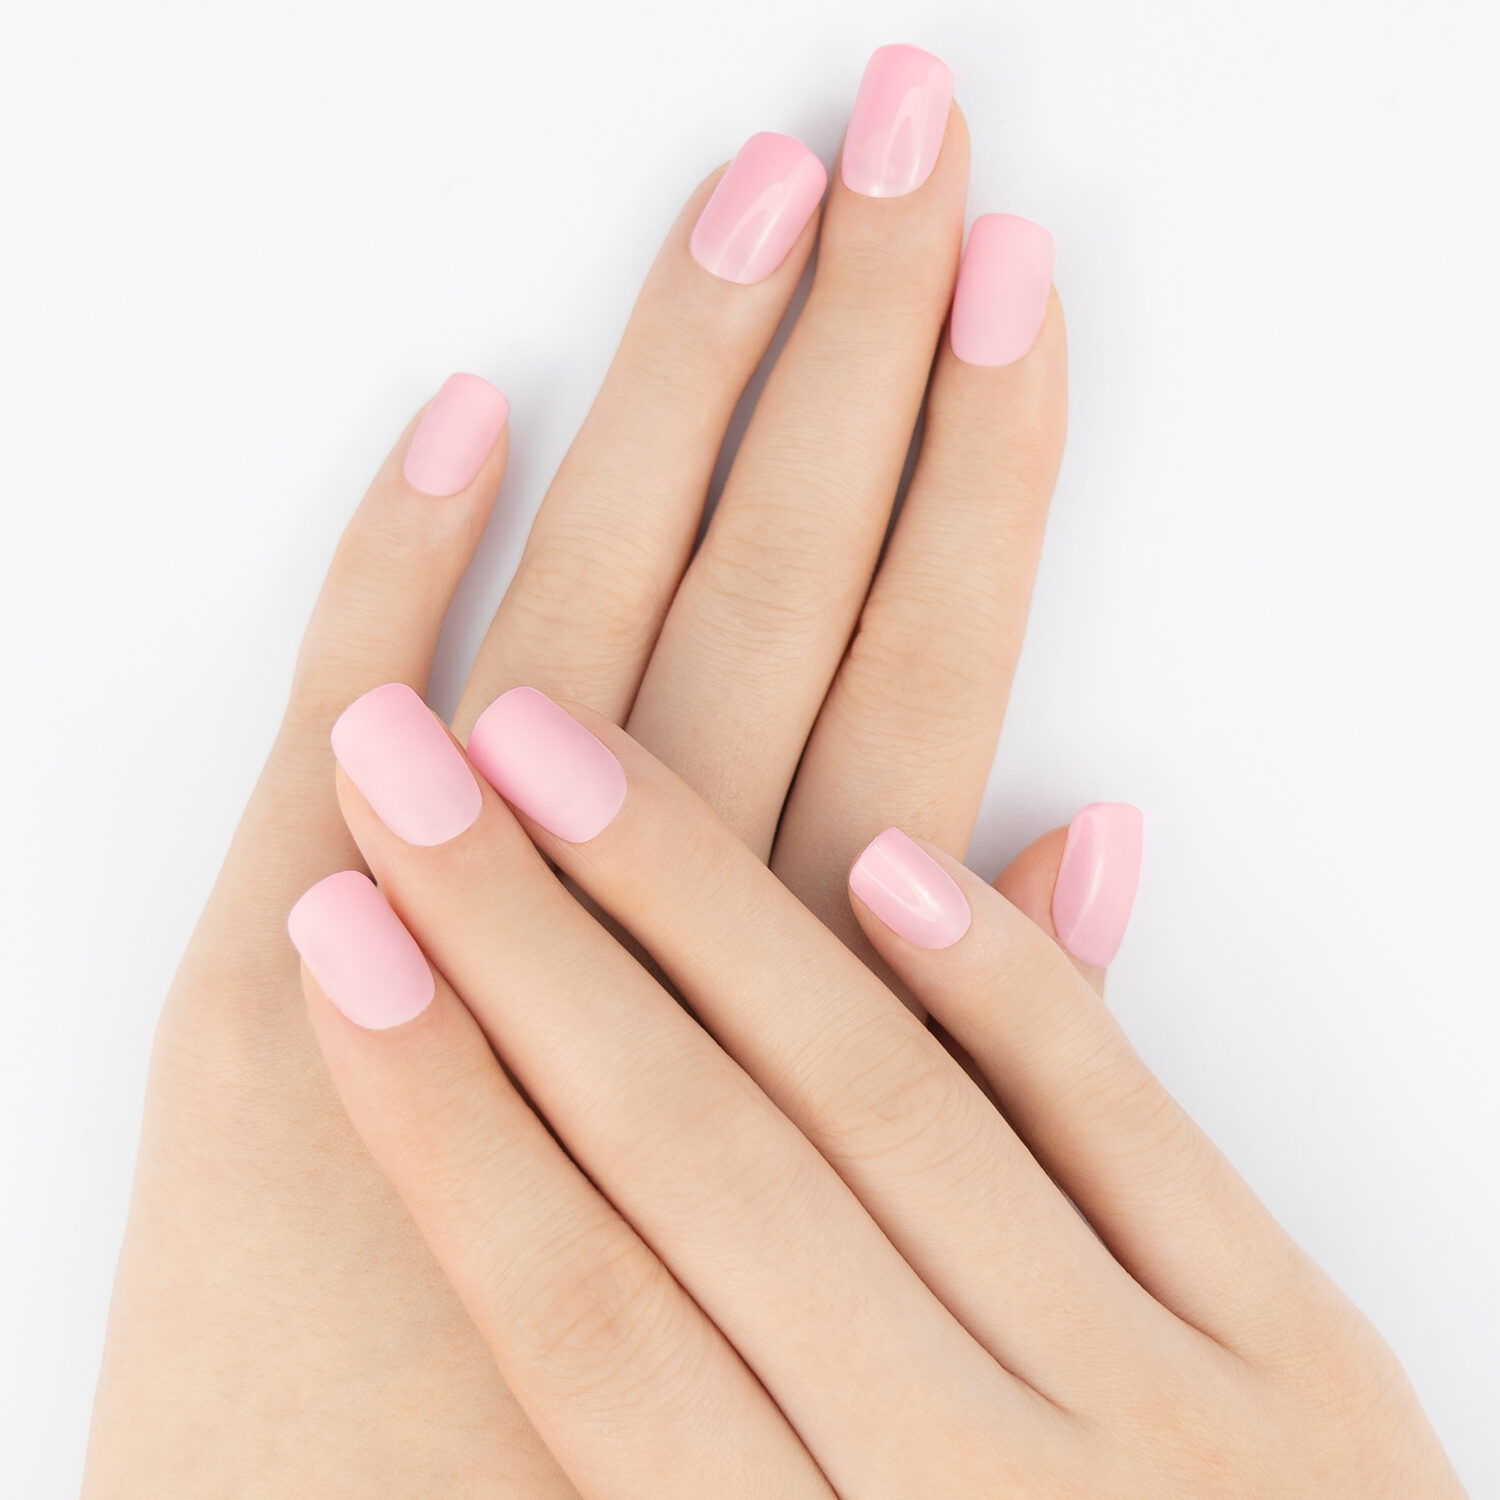 Blush Pink Stick On Nails on hand. Fake Nails, Press On Nails, Artificial Nails, Nail Tips, DIY Manicure, MUSE & Co.